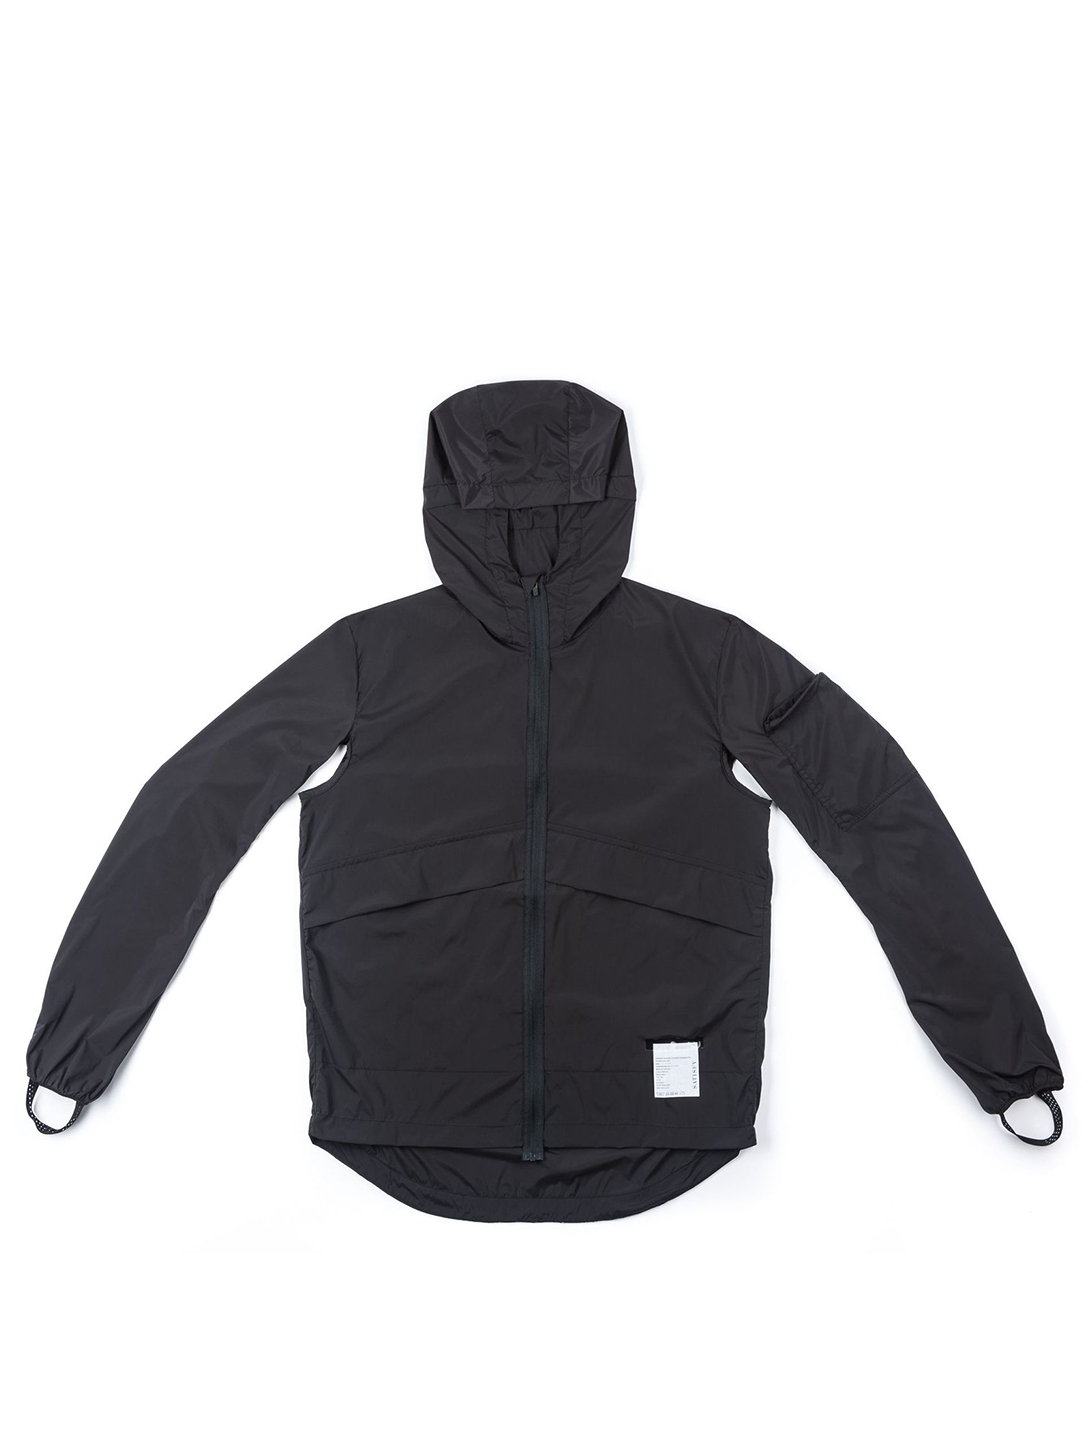 SATISFY Packable Water-Repellent Windbreaker Men's Black